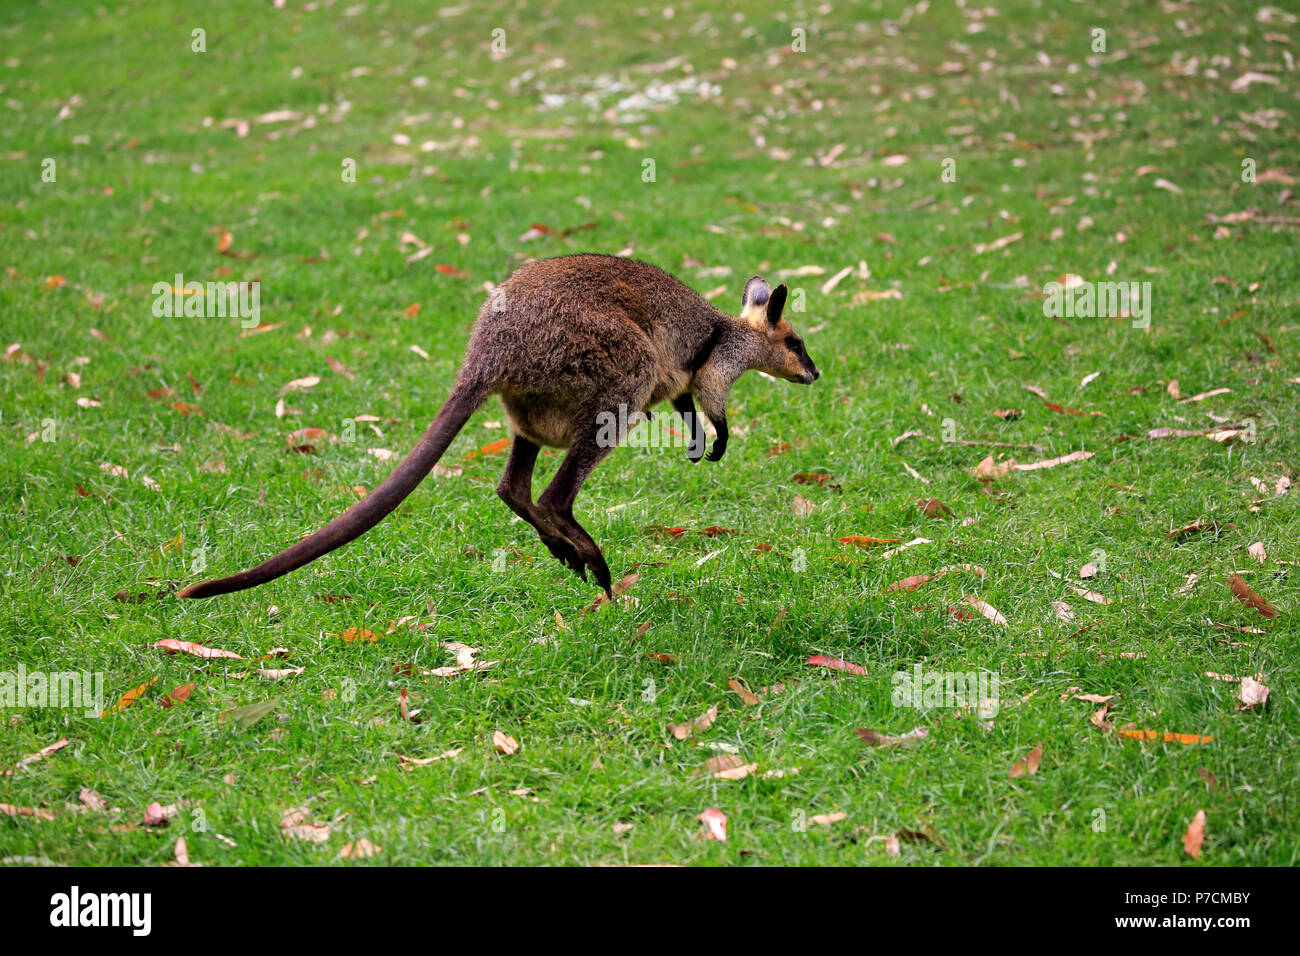 Agile Wallaby, adulti jumping, Cuddly Creek, South Australia, Australia (Macropus agilis) Immagini Stock